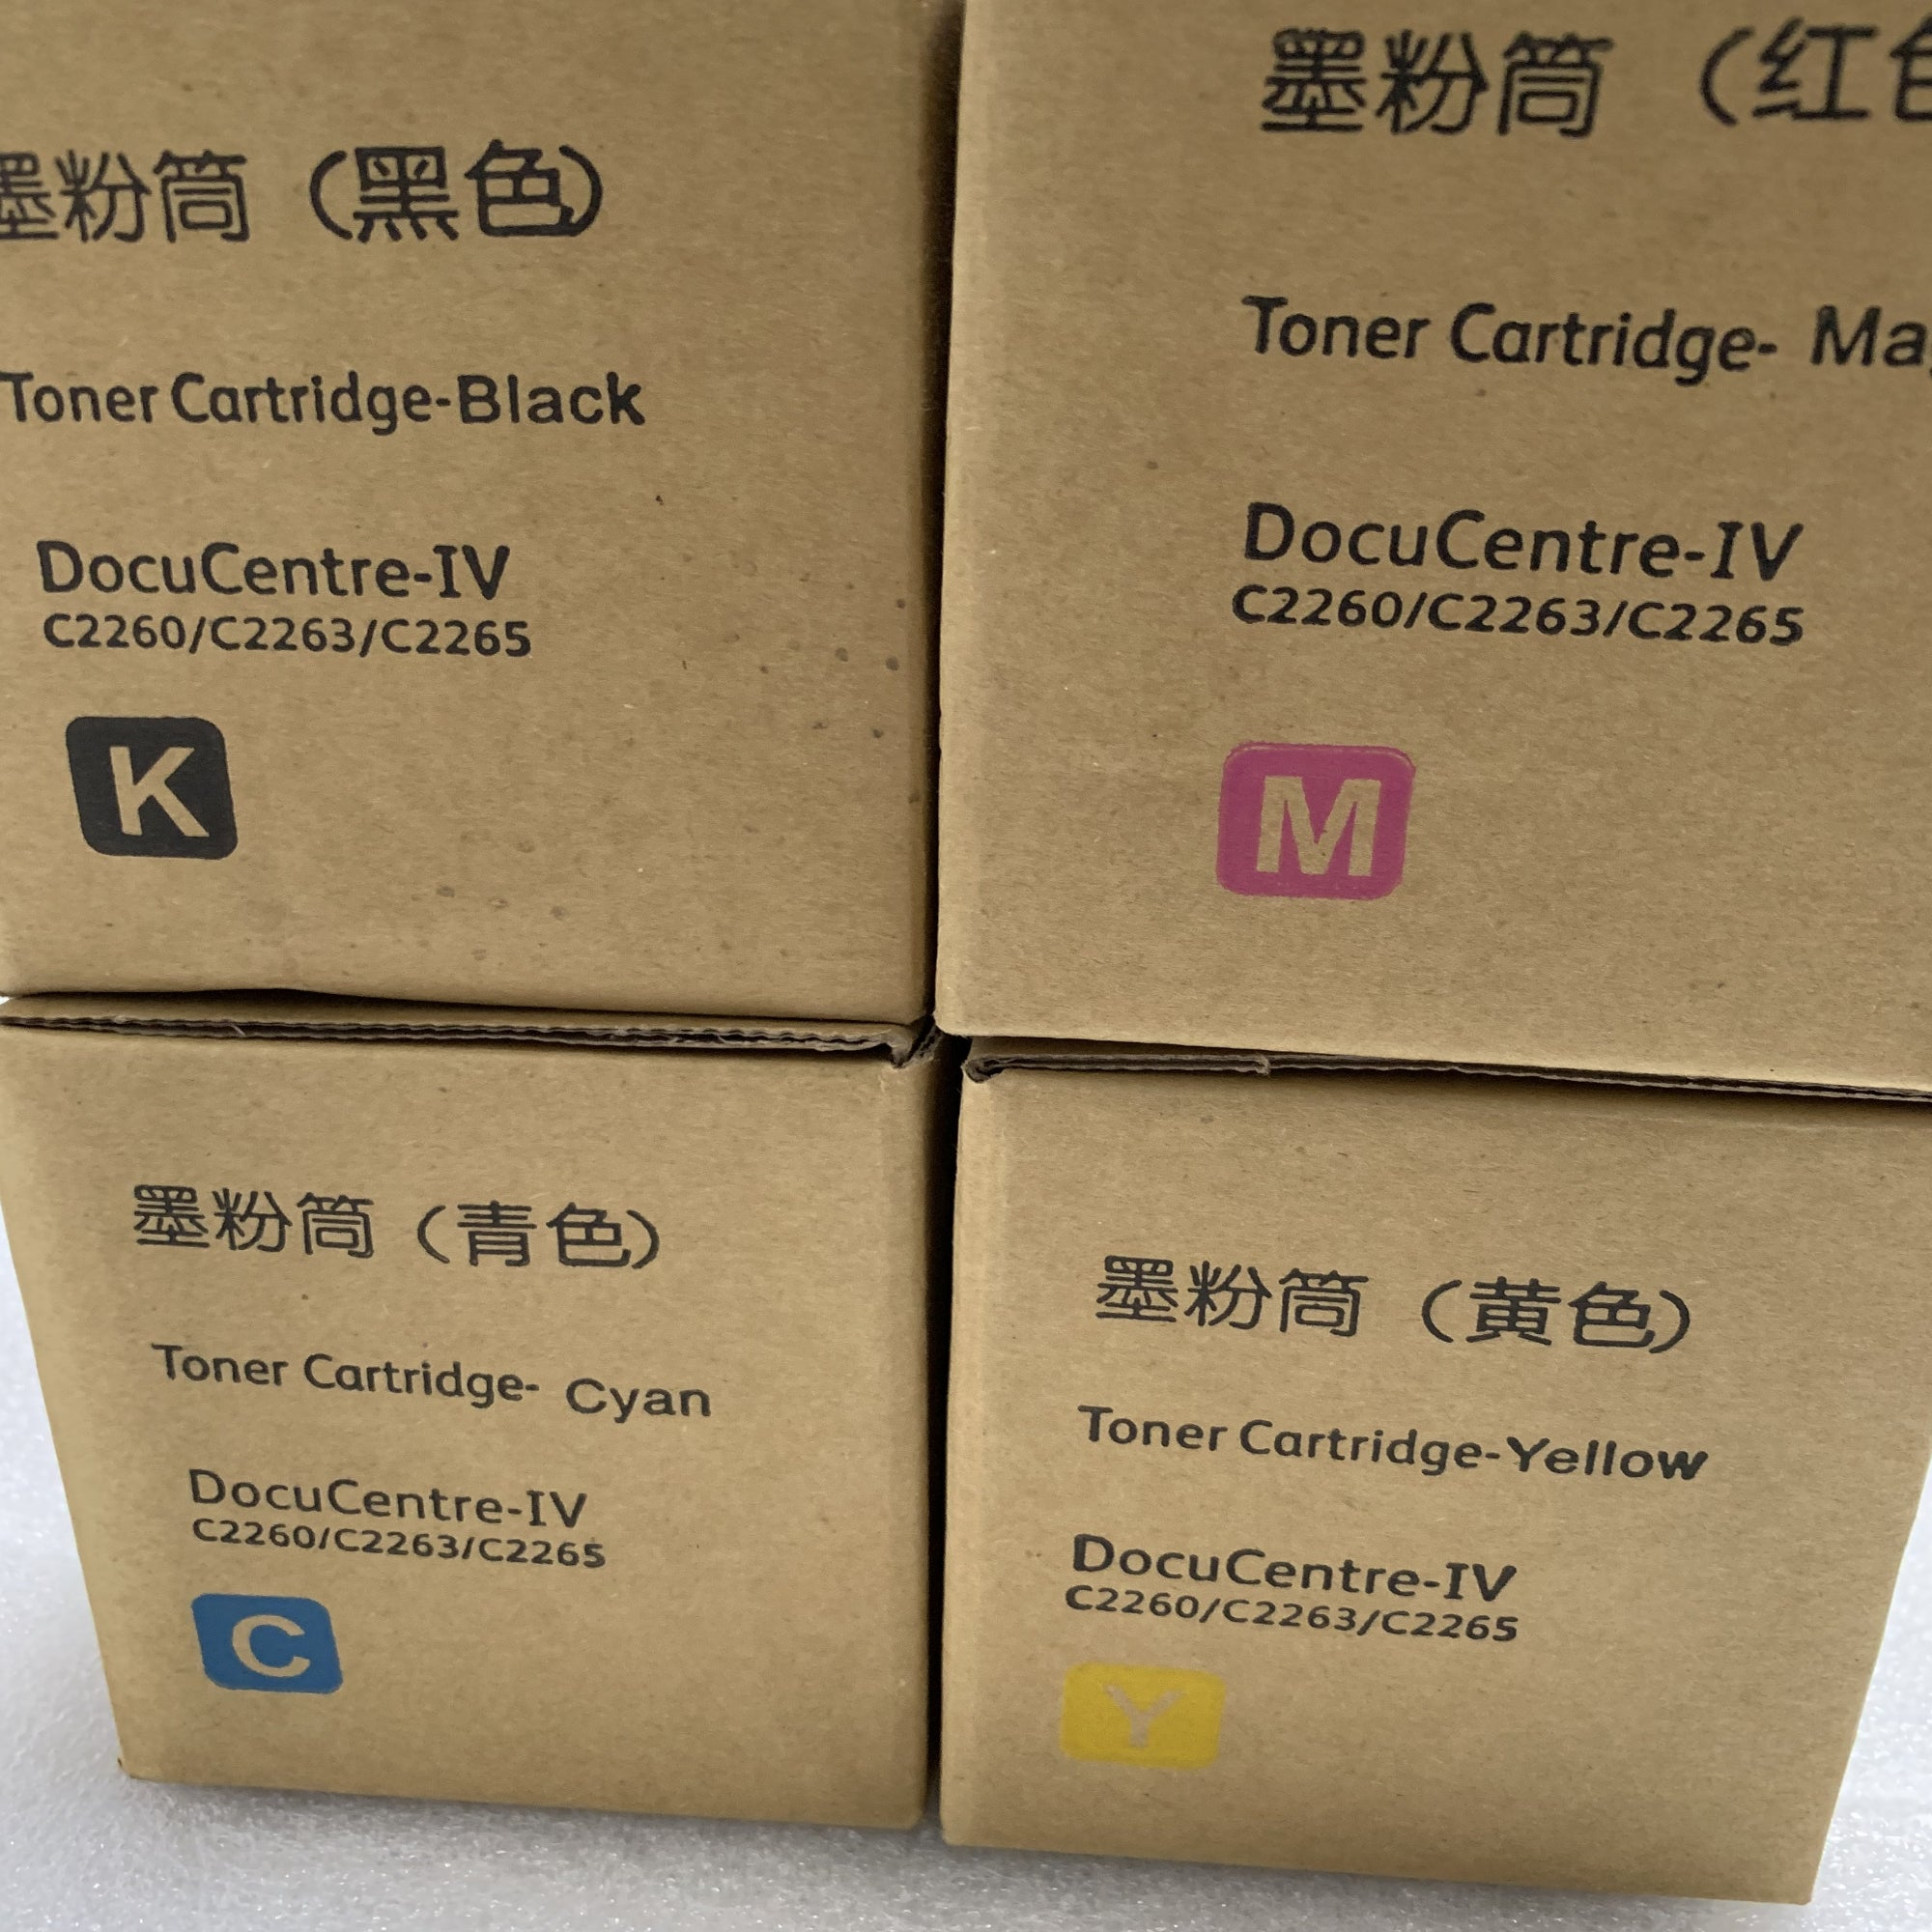 Toner  For Xerox WorkCentre 7120 7125 7220 7225 006R01457 (K) - SOP-TECHNOLOGIES, INC.